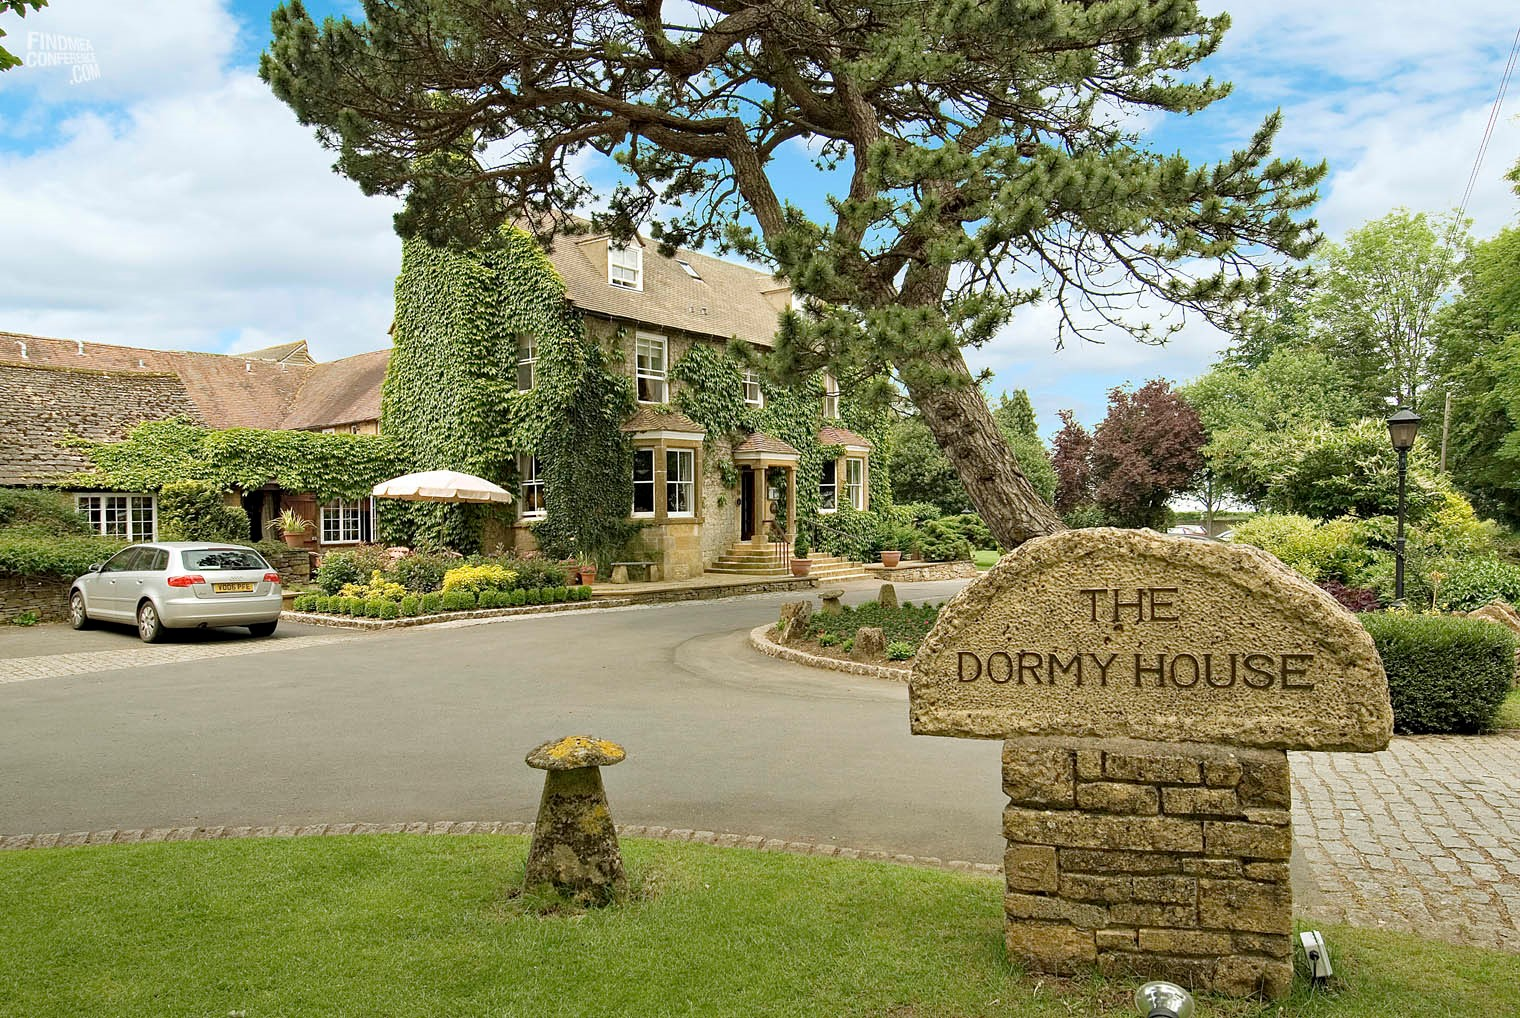 Picture of Dormy House Hotel